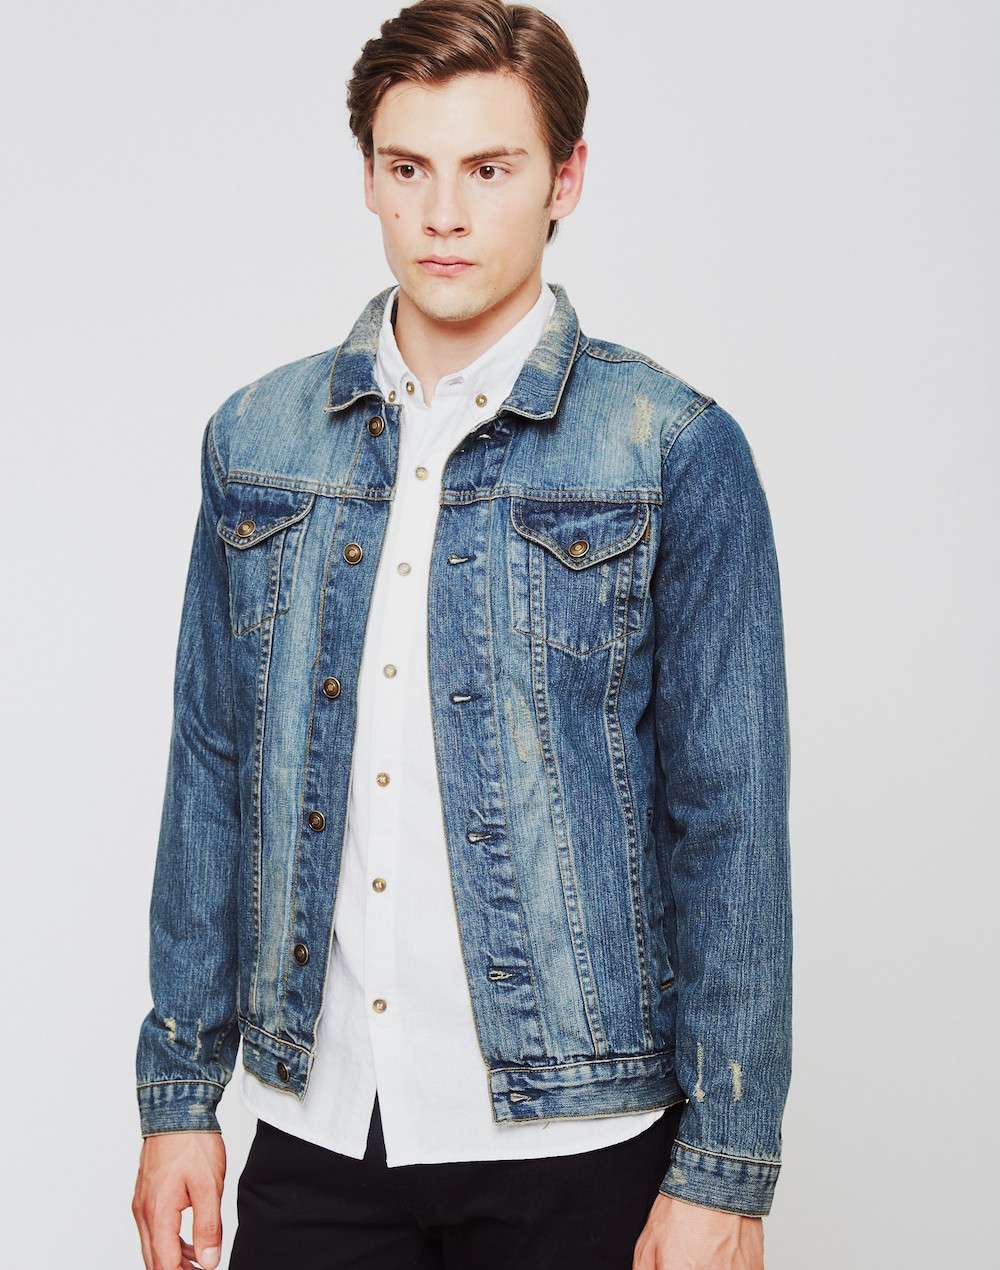 Men\'s Denim Jacket Style Guide | Fashion Dress in The Present